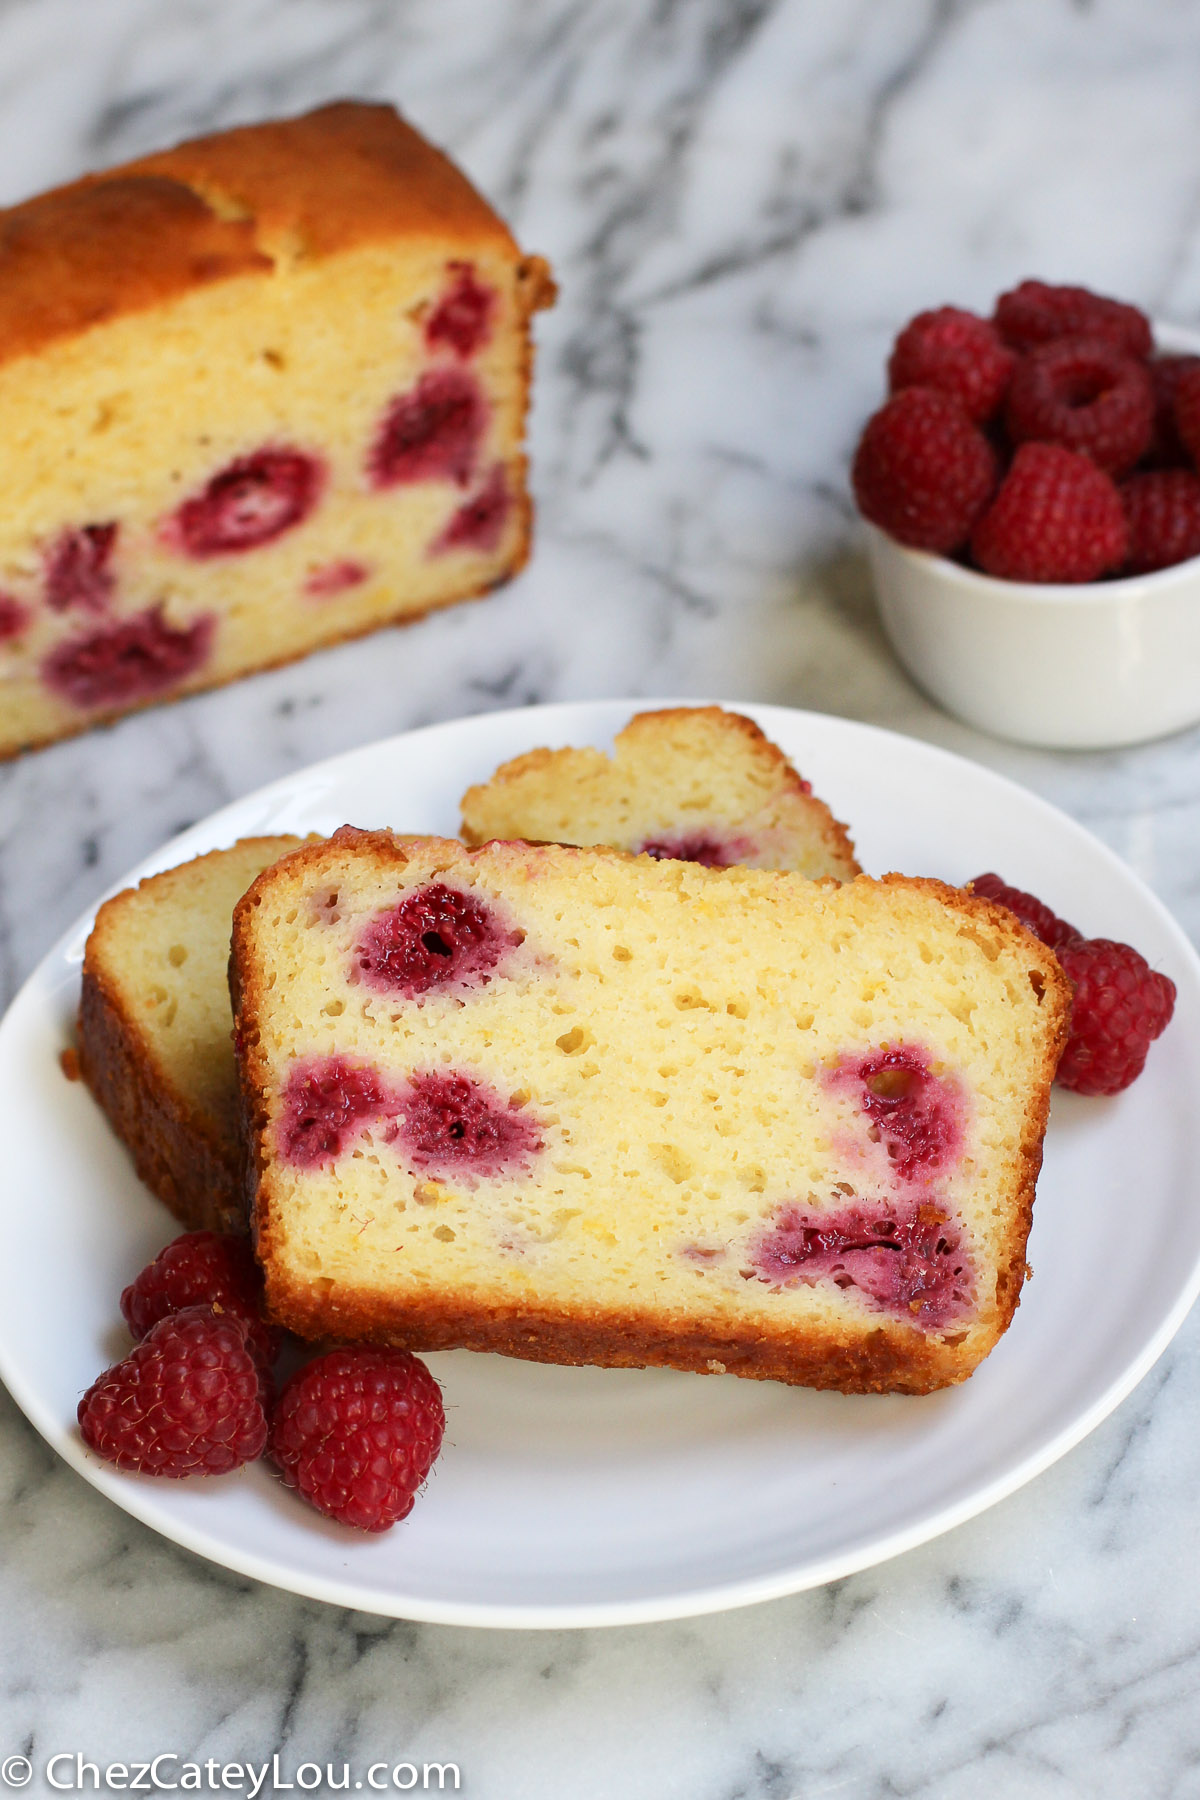 Lemon Raspberry Yogurt Cake | ChezCateyLou.com